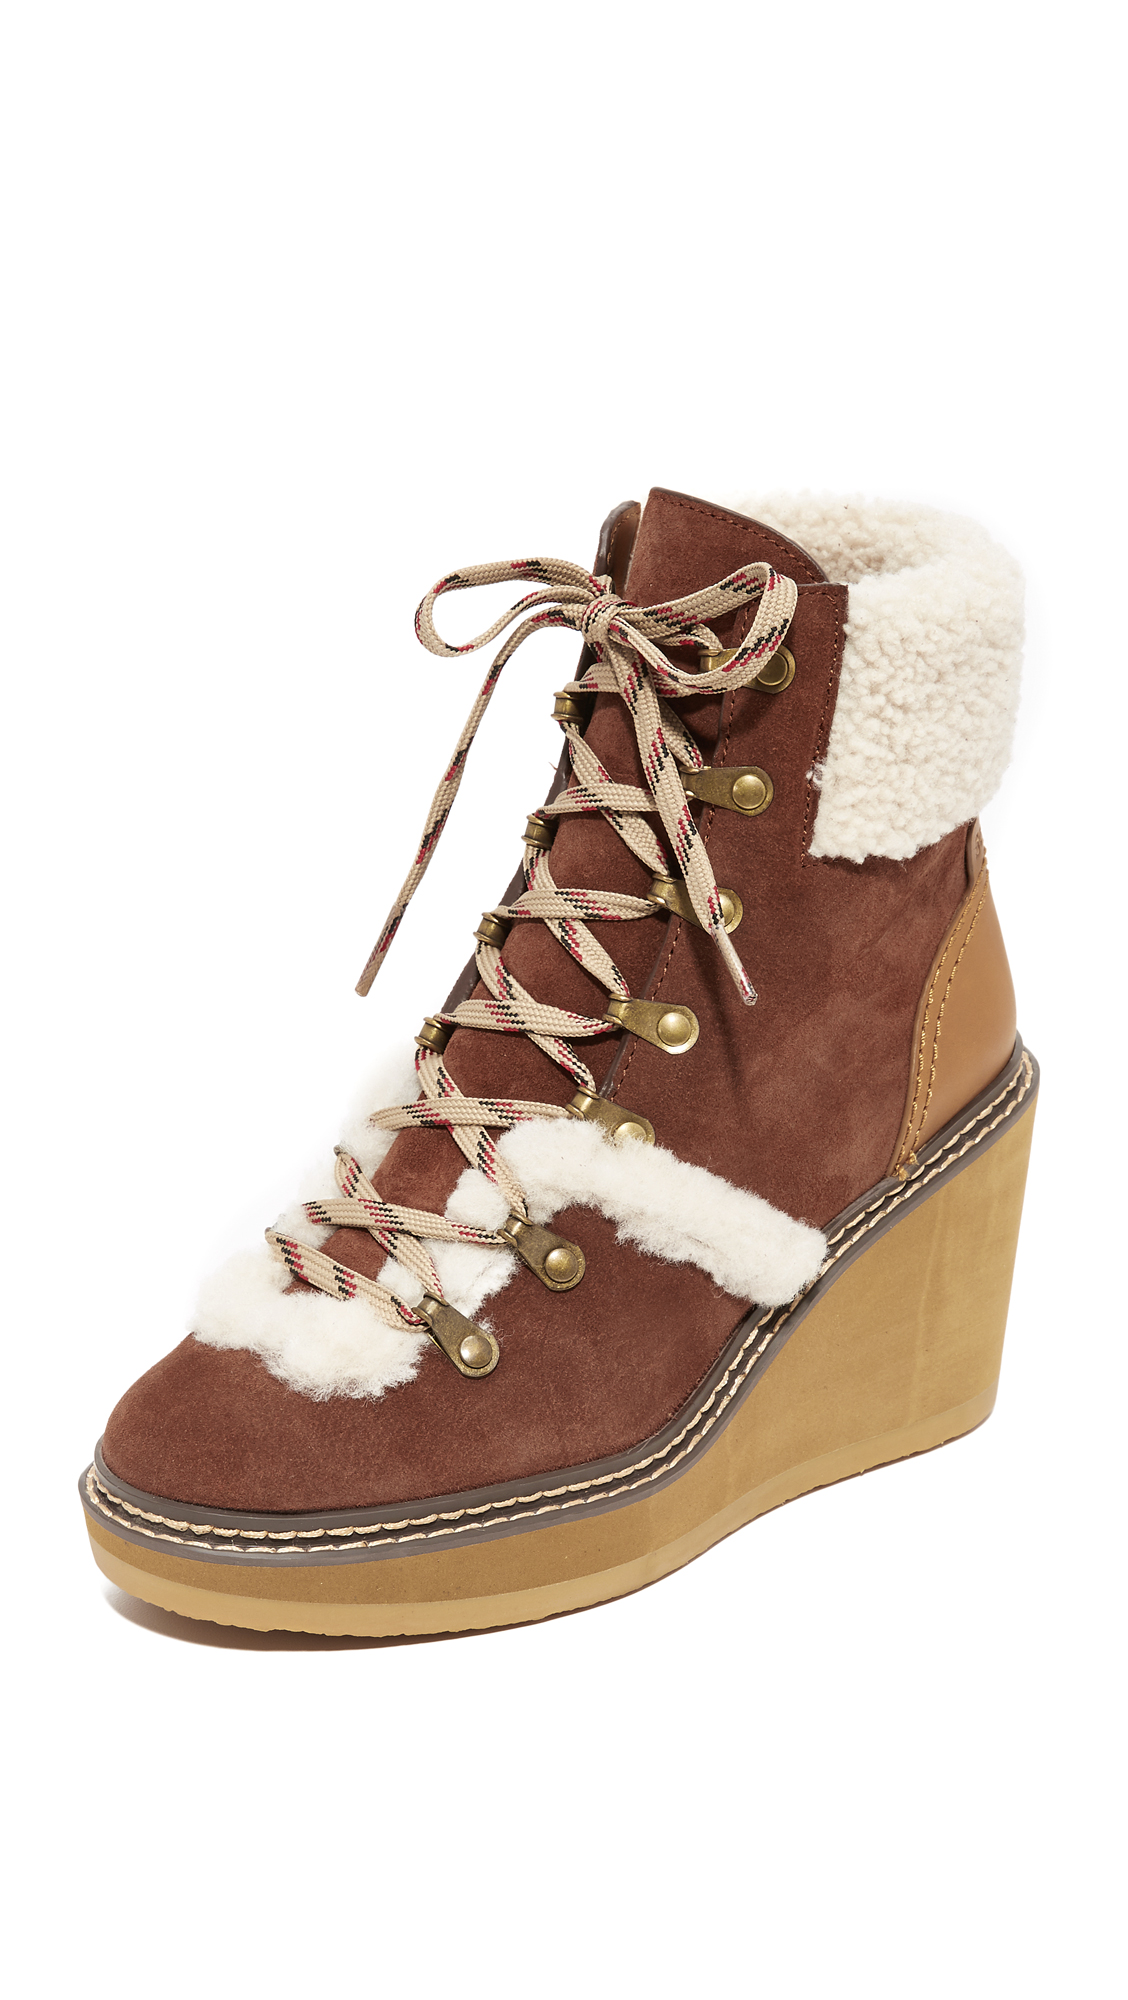 See by Chloe Eileen Wedge Shearling Booties - Azteco